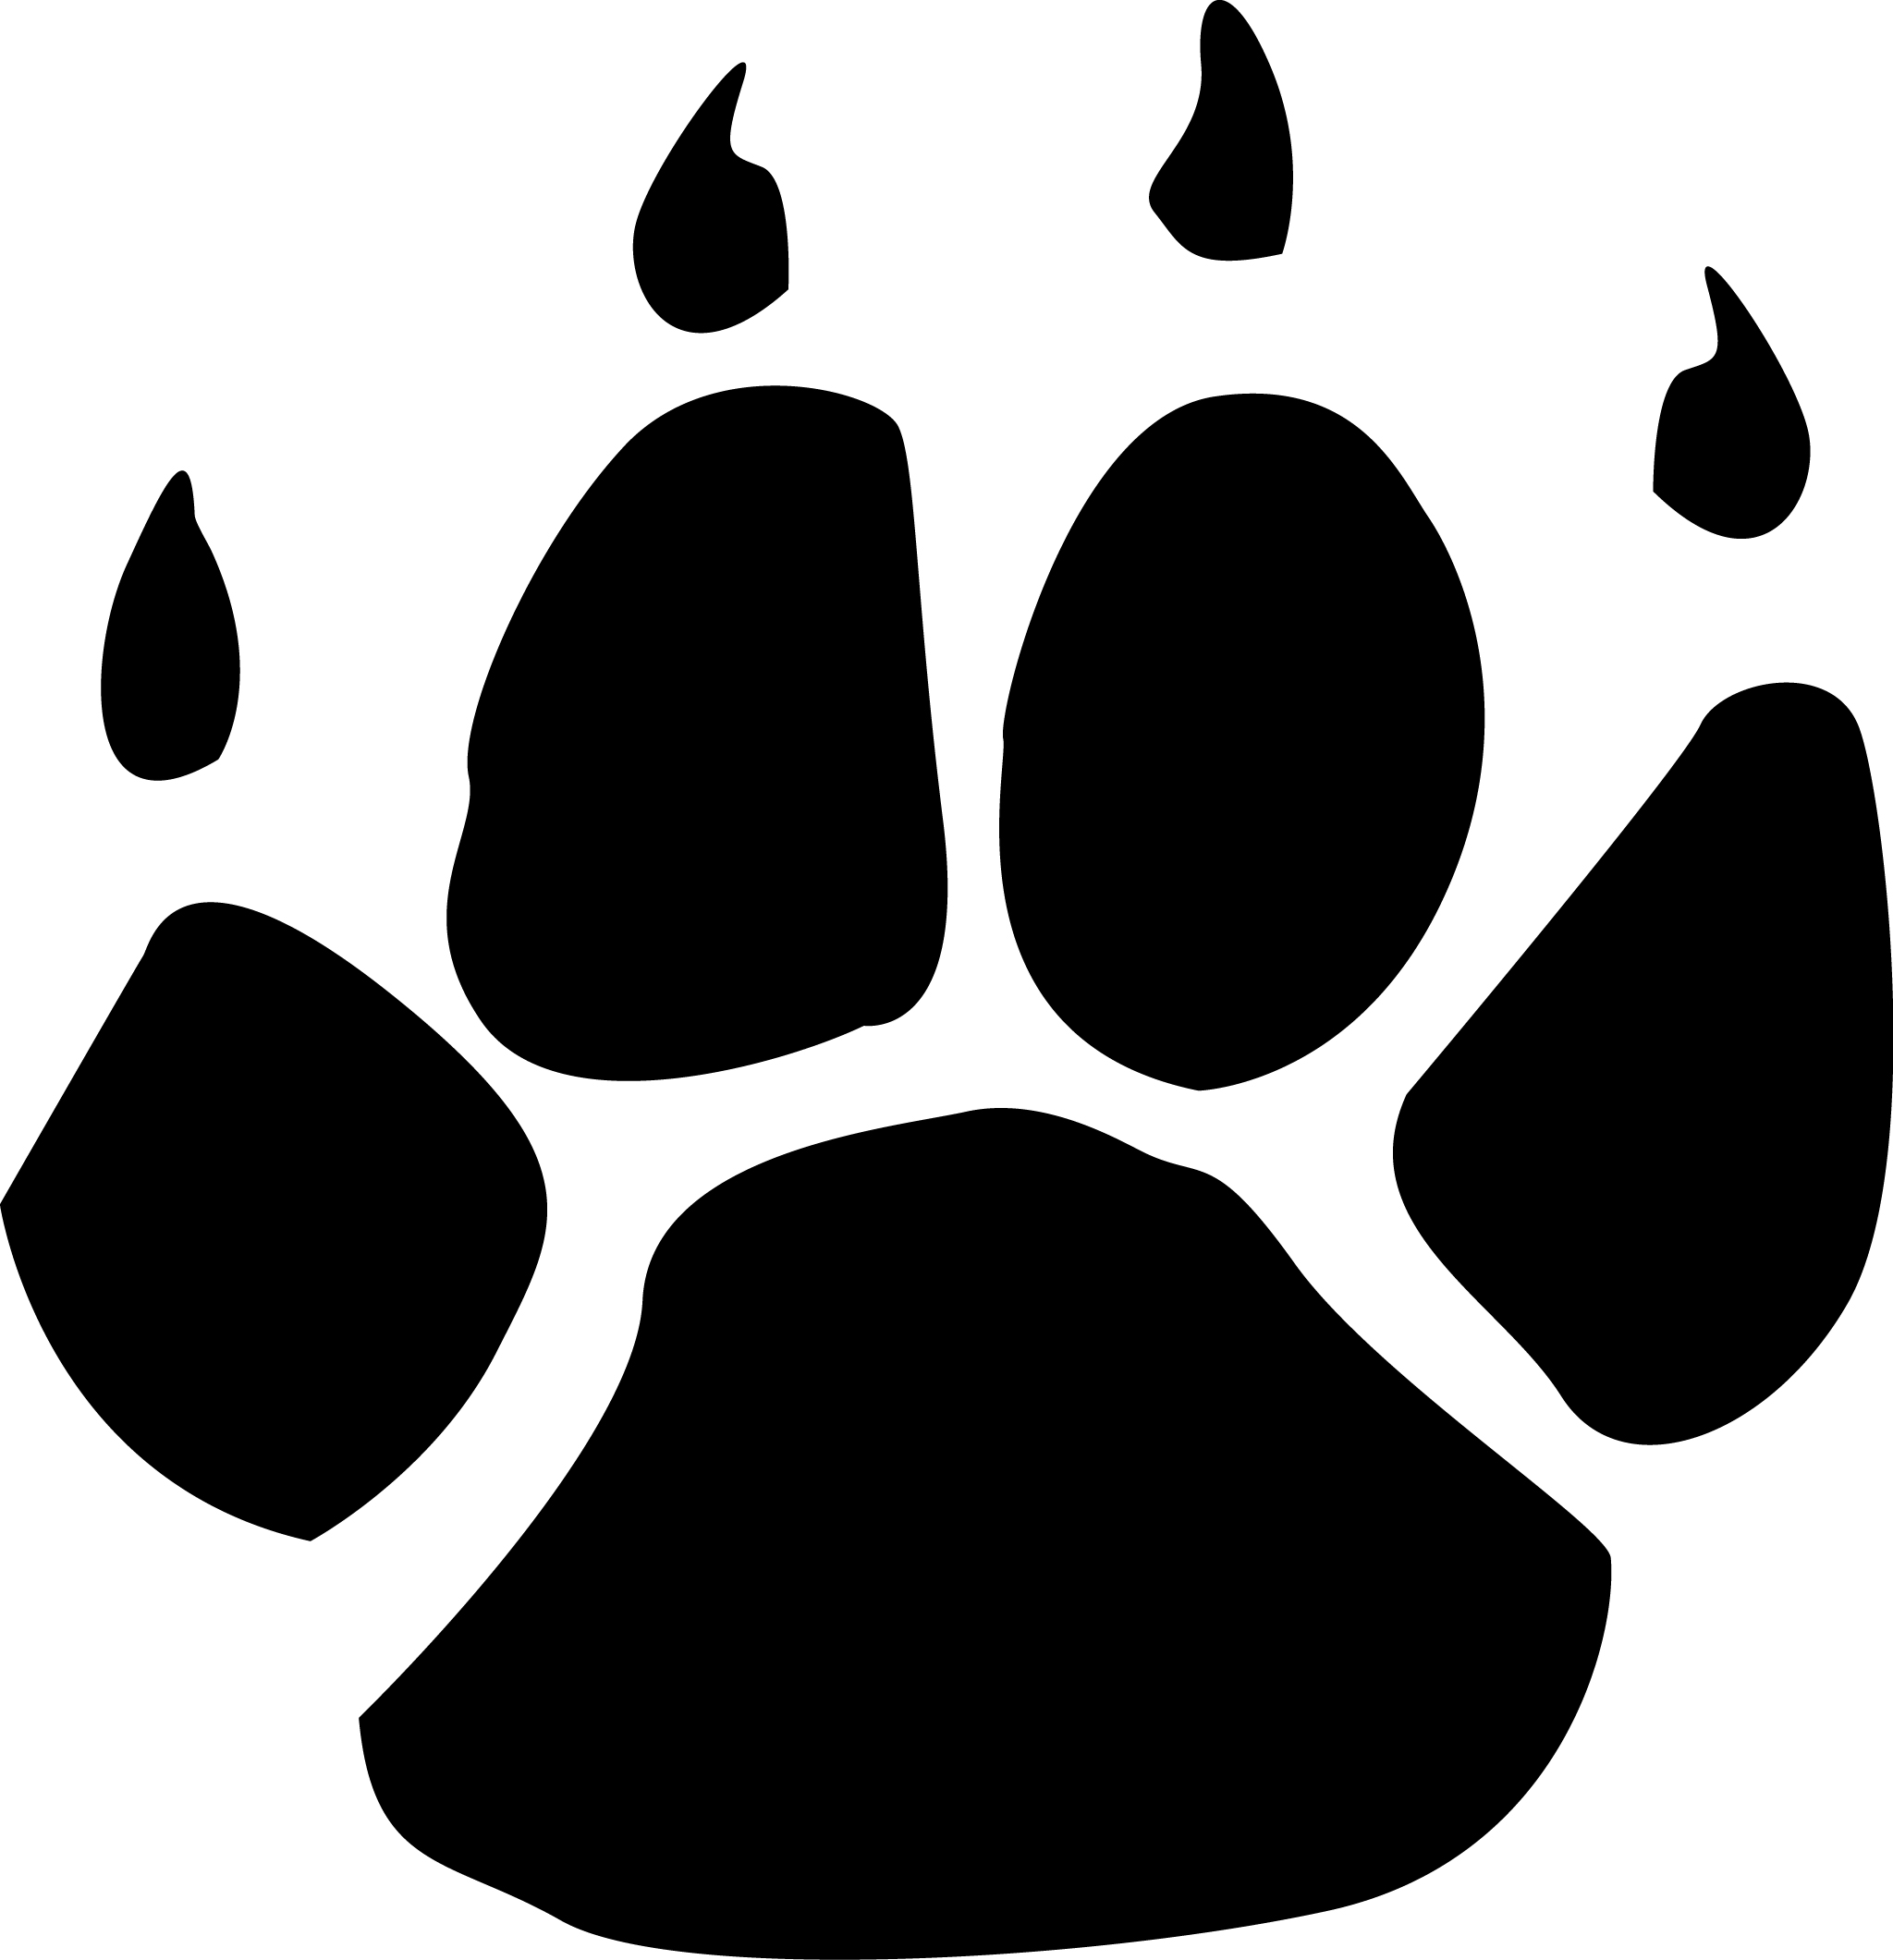 Paw print clipart jpeg banner Wildcats Paw Print Clipart - Clipart Kid banner